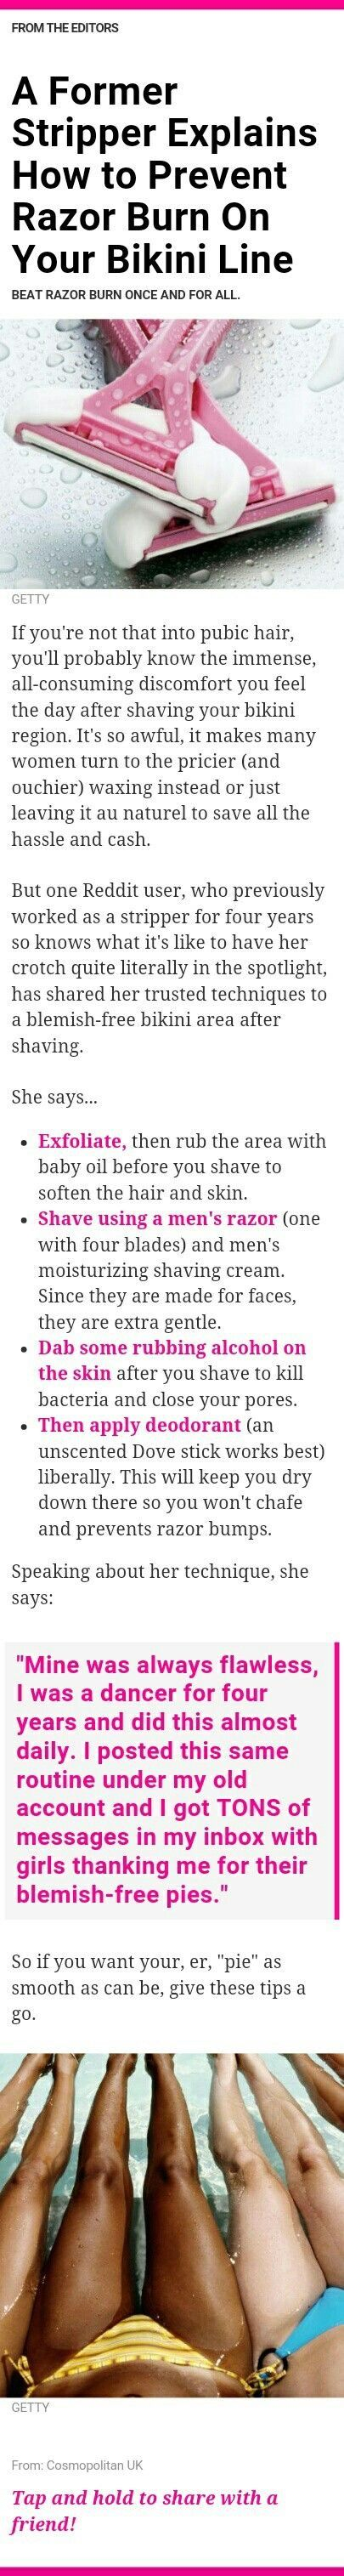 I've tried there of the 4 techniques and never thought about the deodorant.  Interesting...